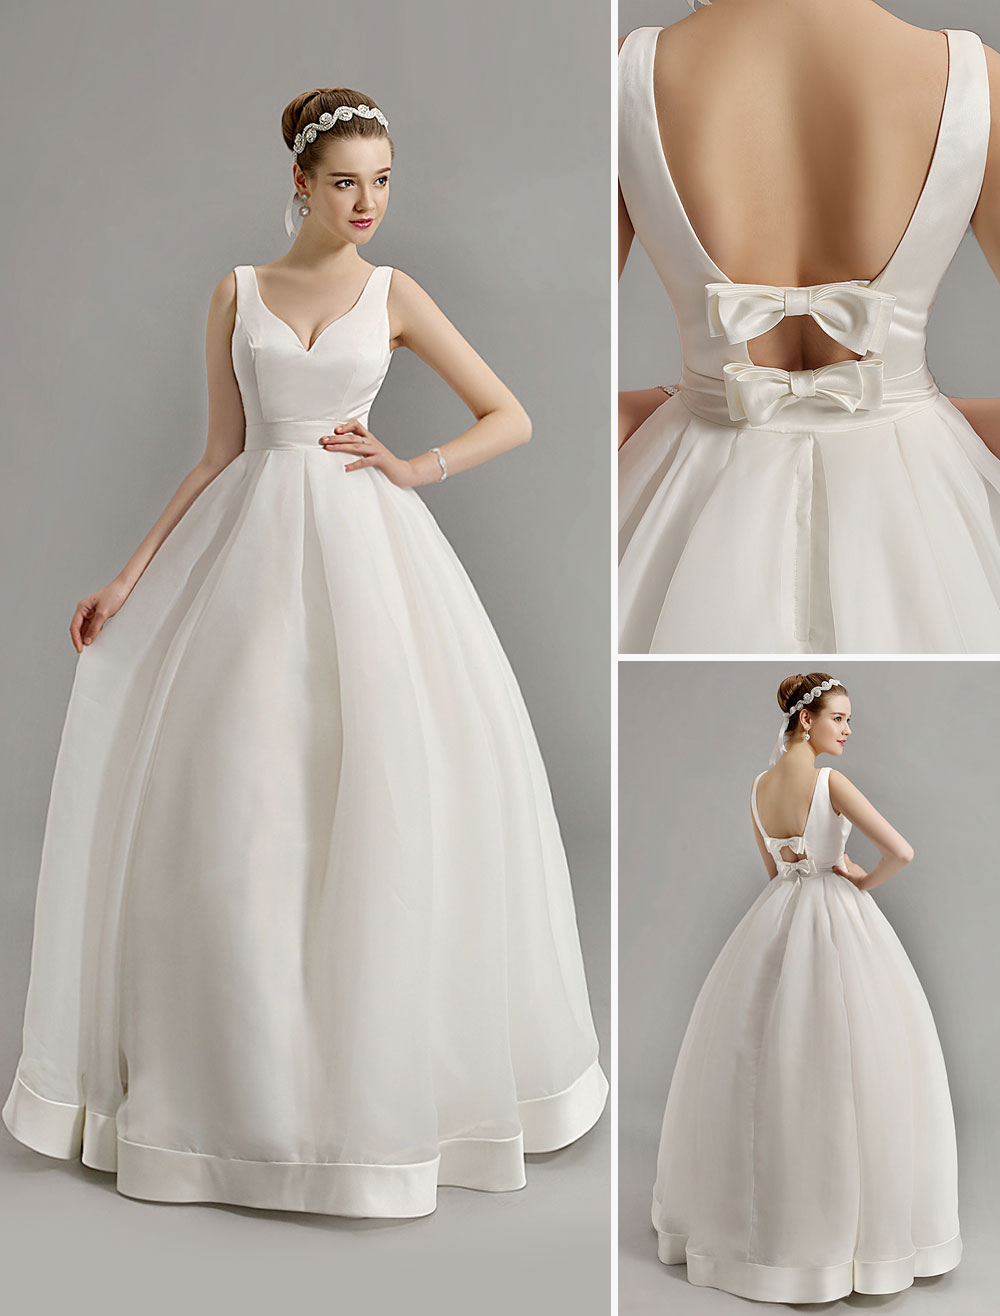 Vintage Inspired Plunge V Neck Wedding Gown With Bow Embellished Cut Out Back Milanoo